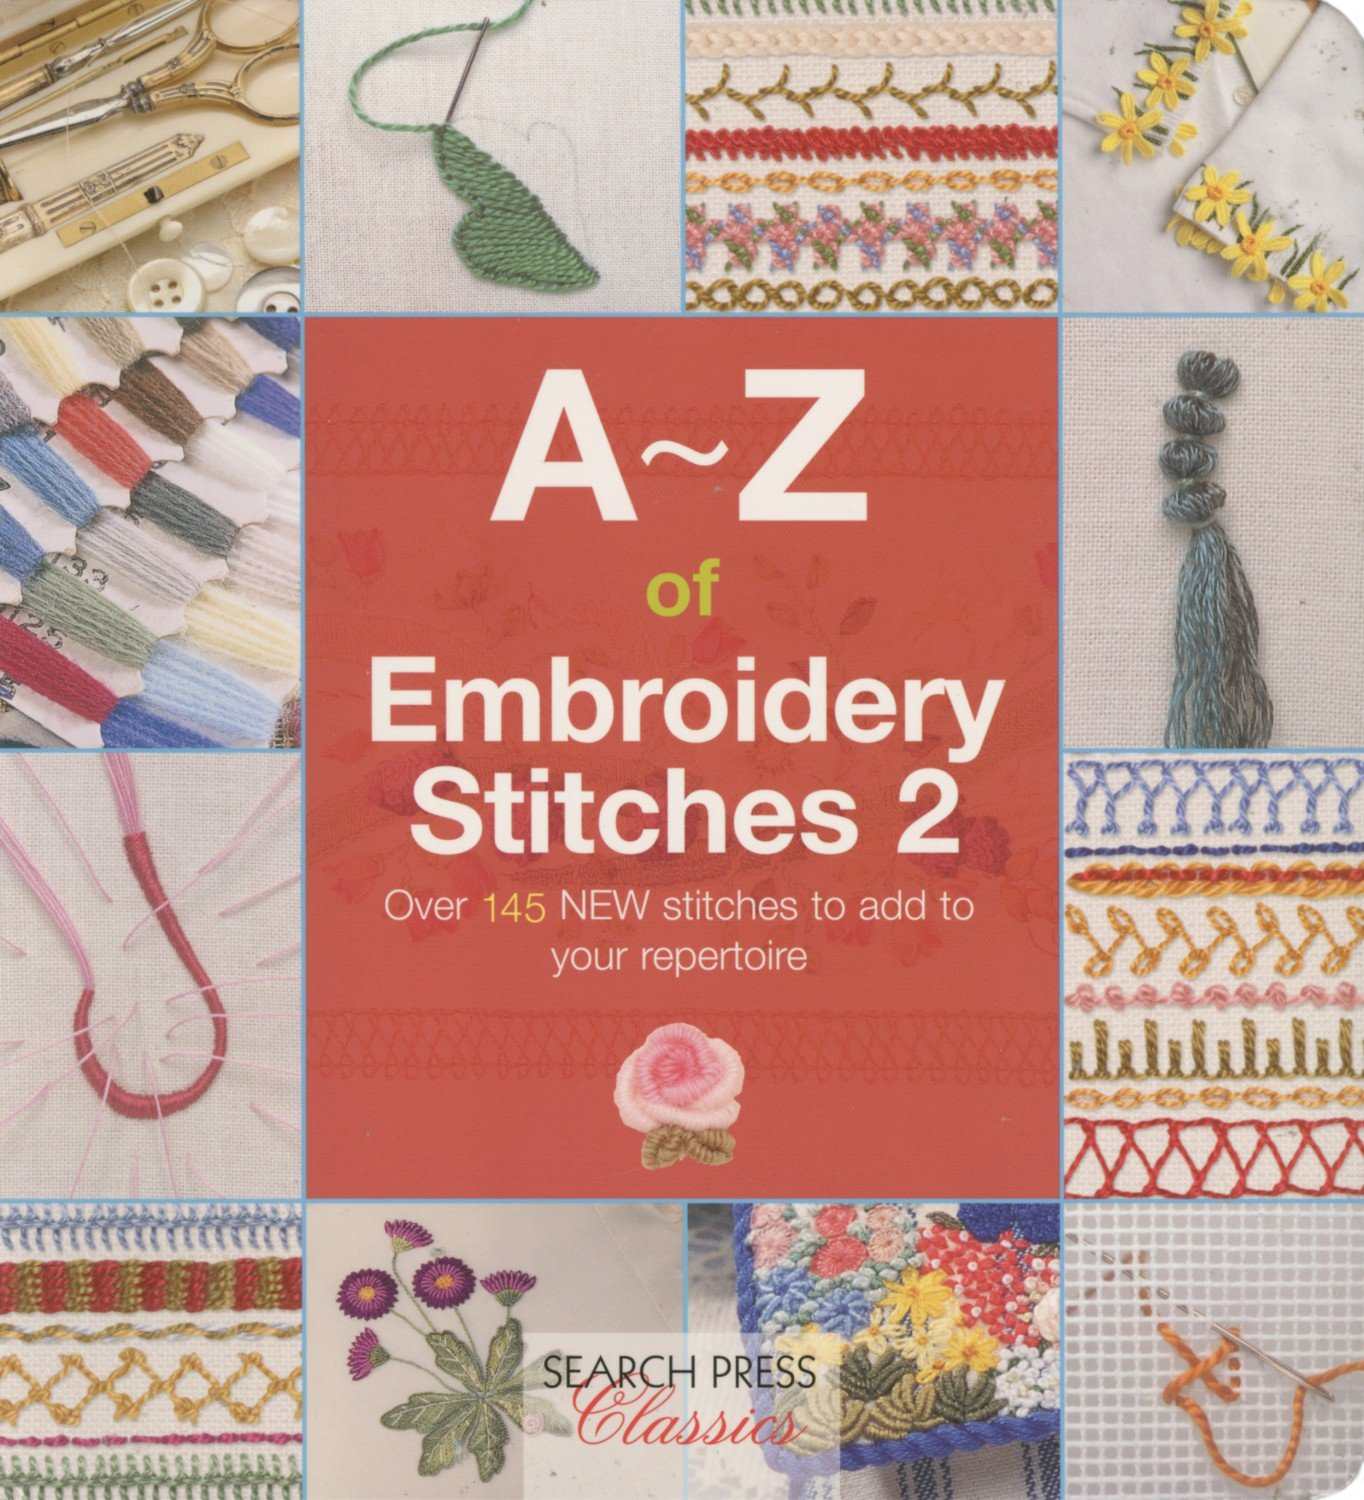 A-Z Embroidery Stitches Book #2